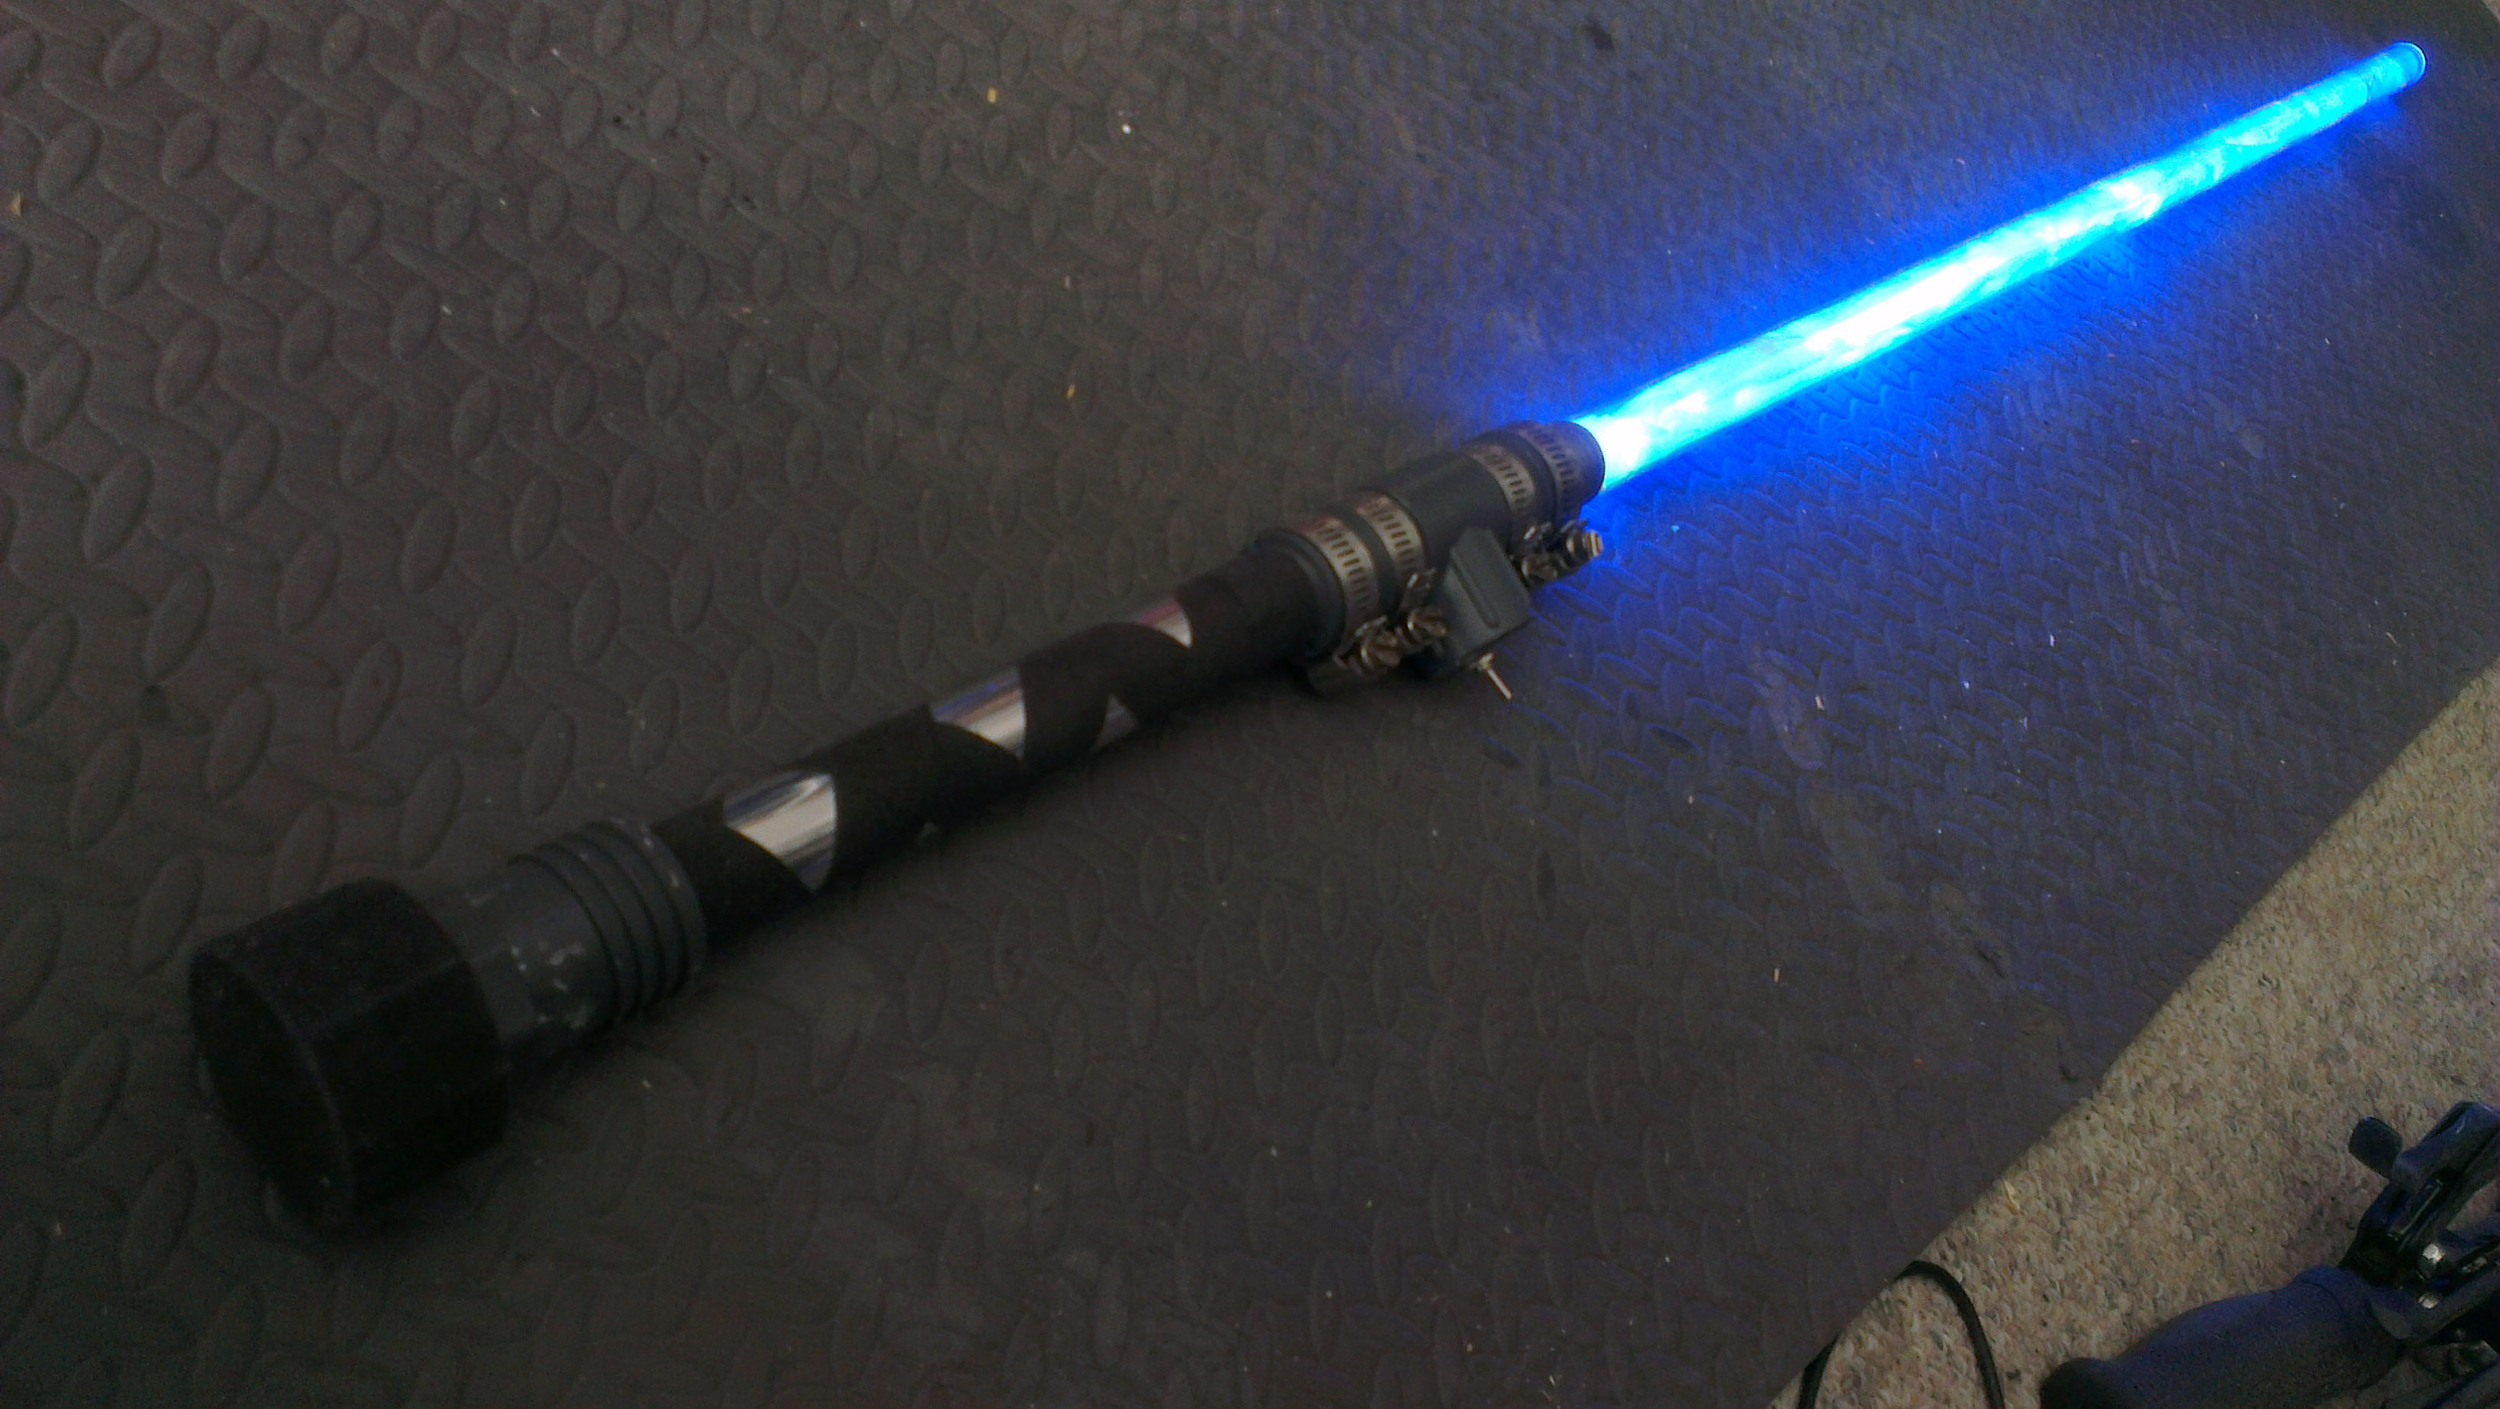 DIY light saber.